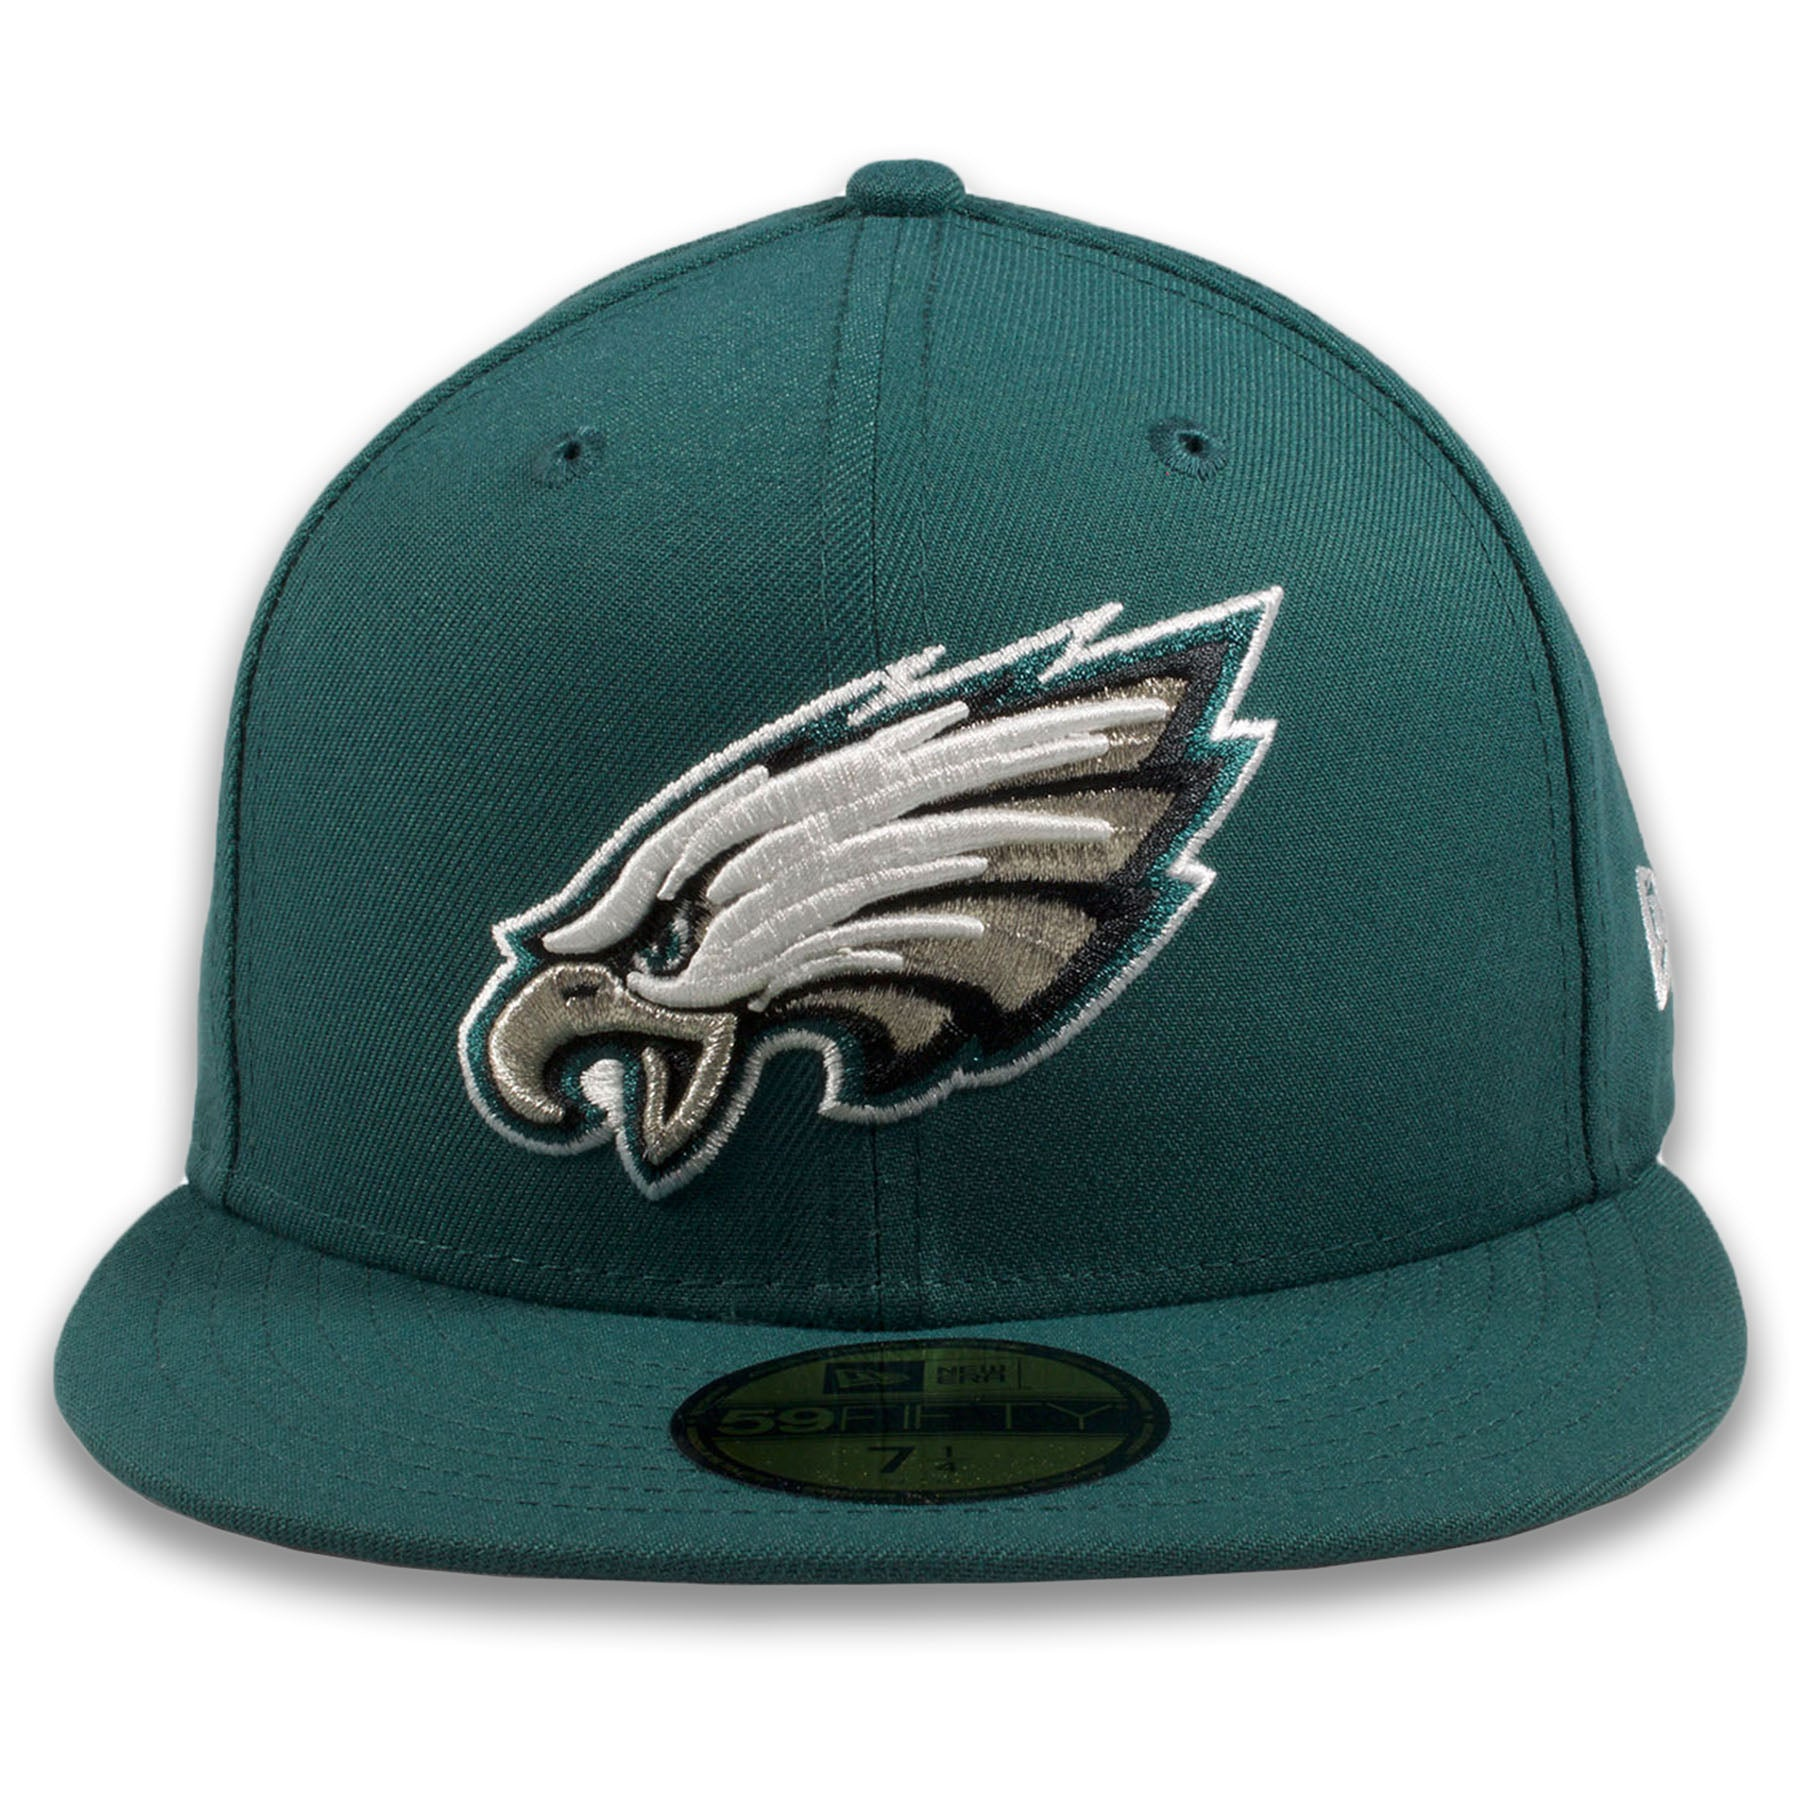 Philadelphia Phillies Black Green Infrared Silver New Era 59Fifty Fitted Hat Cap